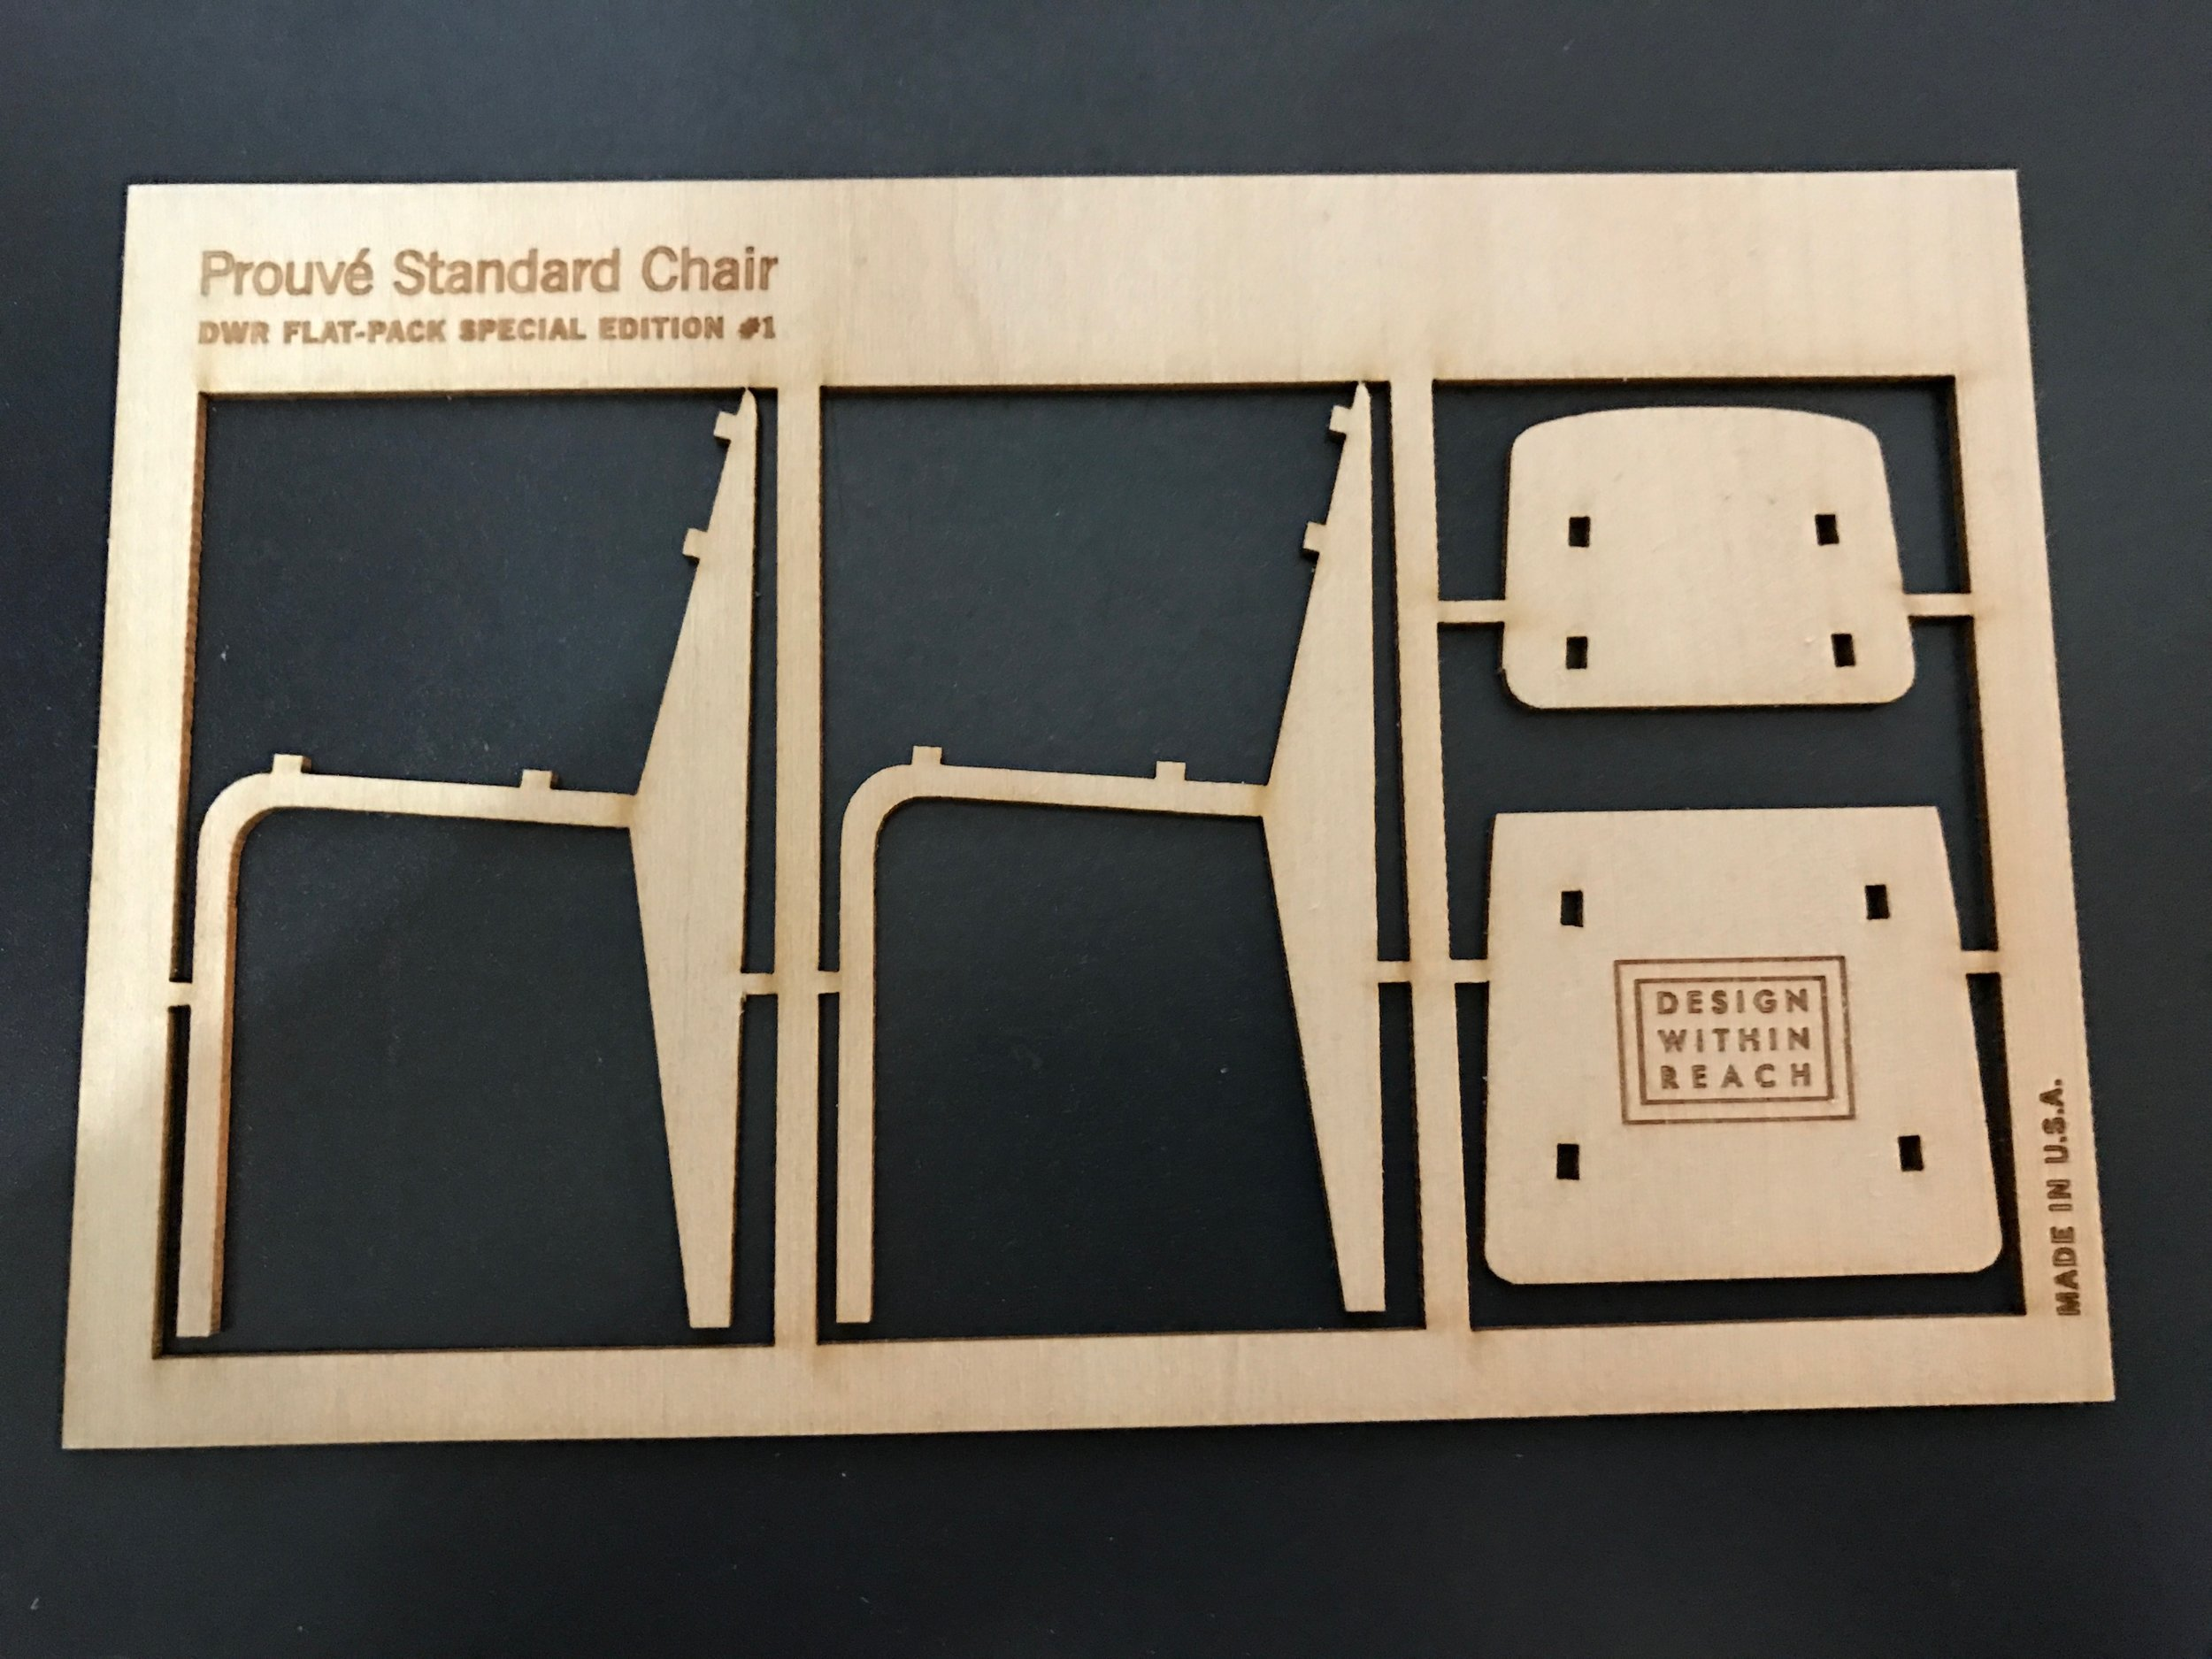 Etched & Cut Craft Ply for Design Within Reach